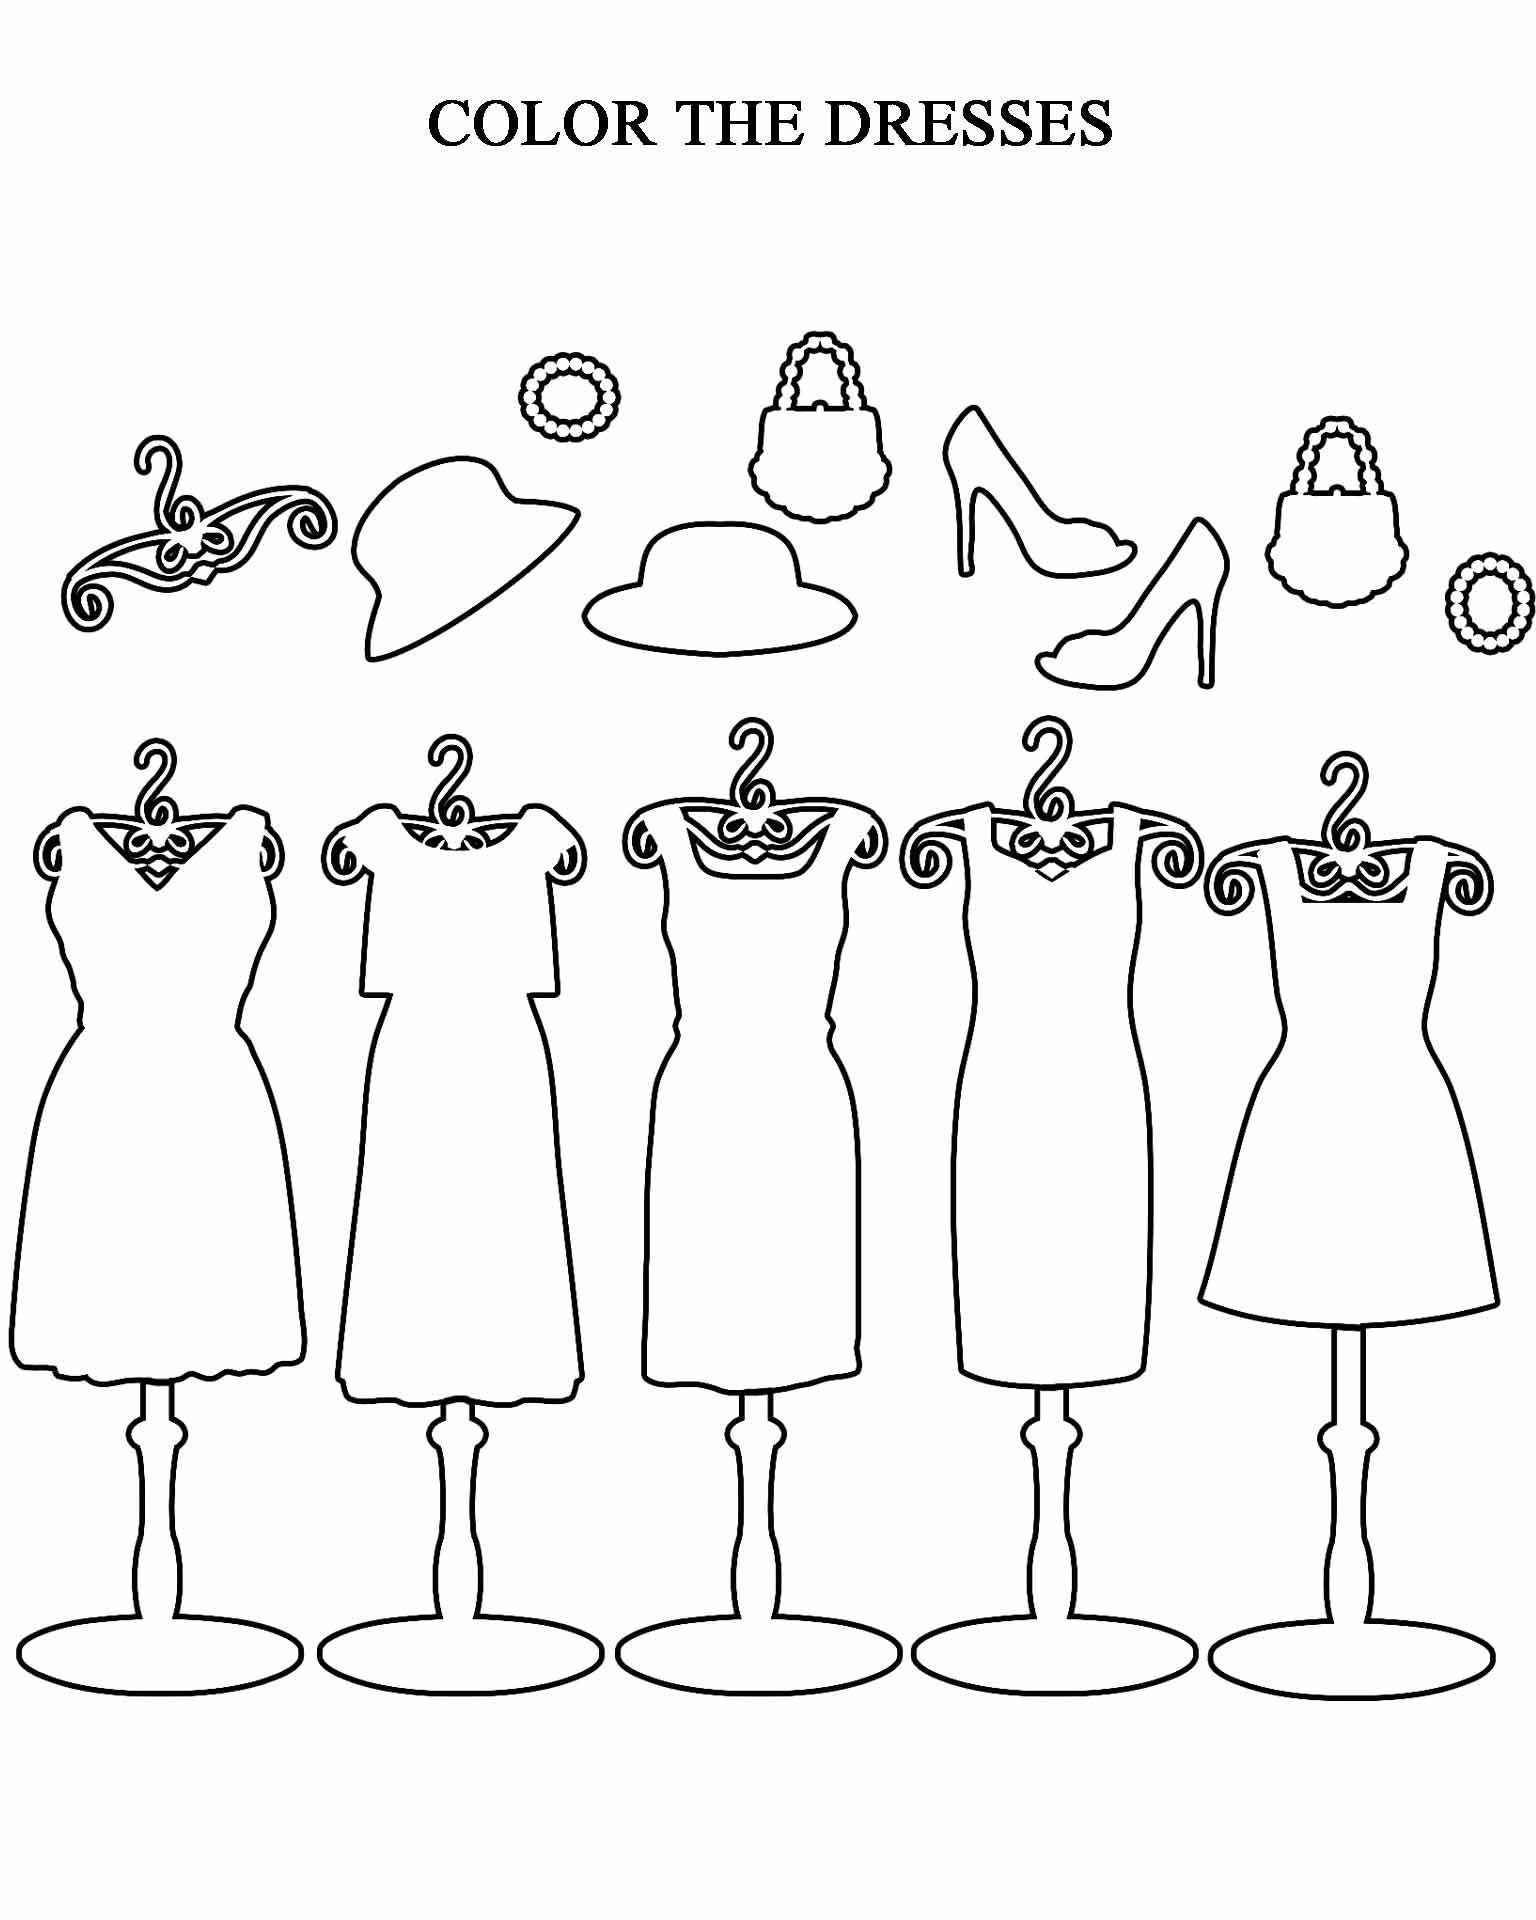 Color The Dresses